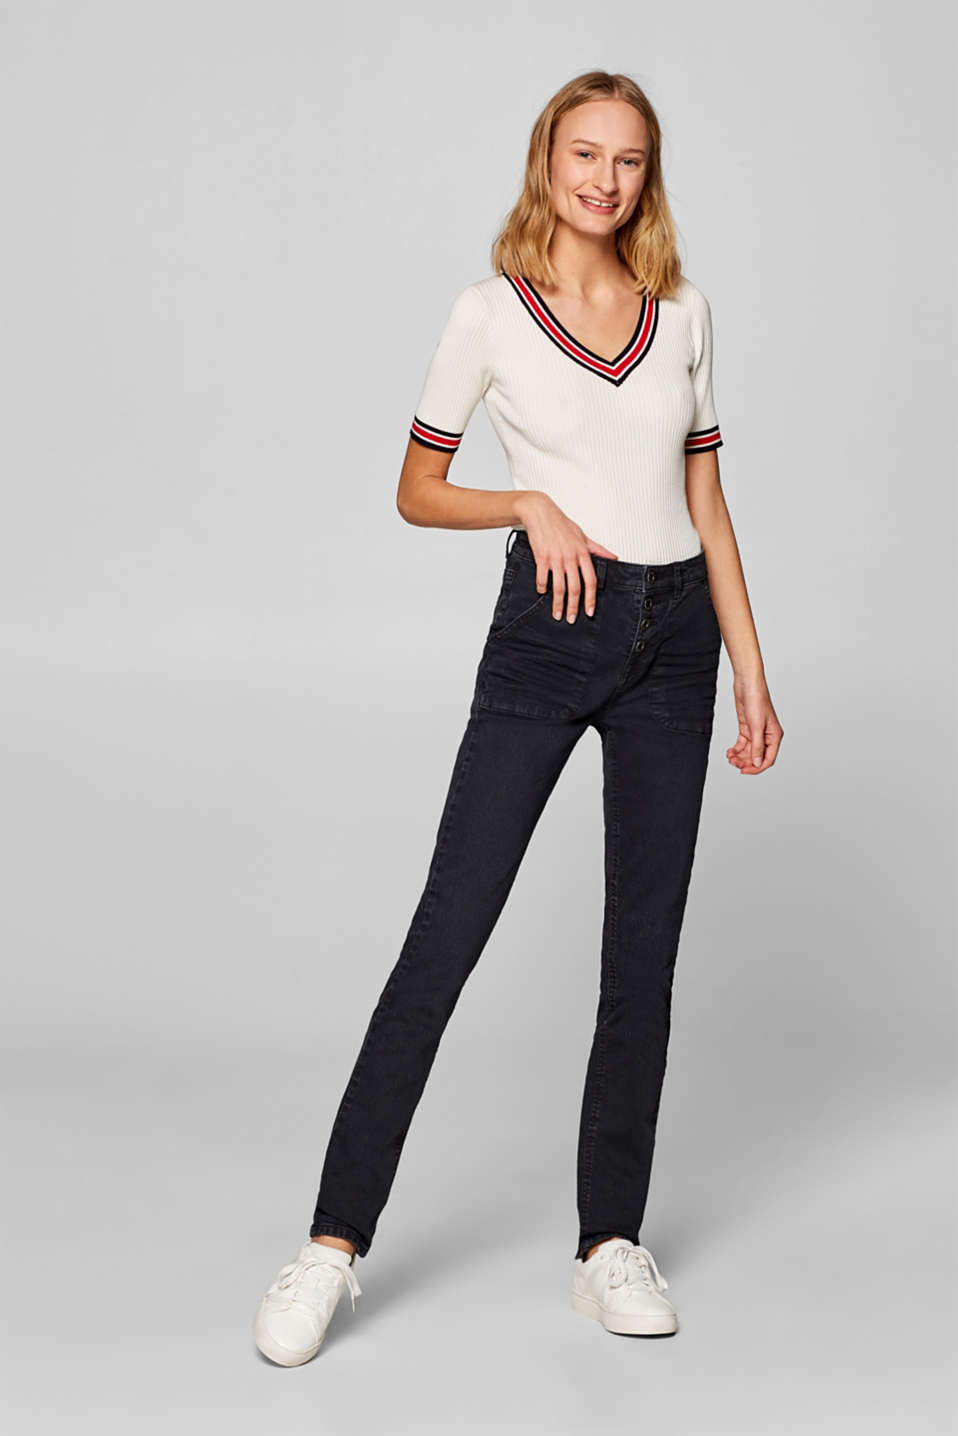 Esprit - Stretch trousers with a button placket and front pockets